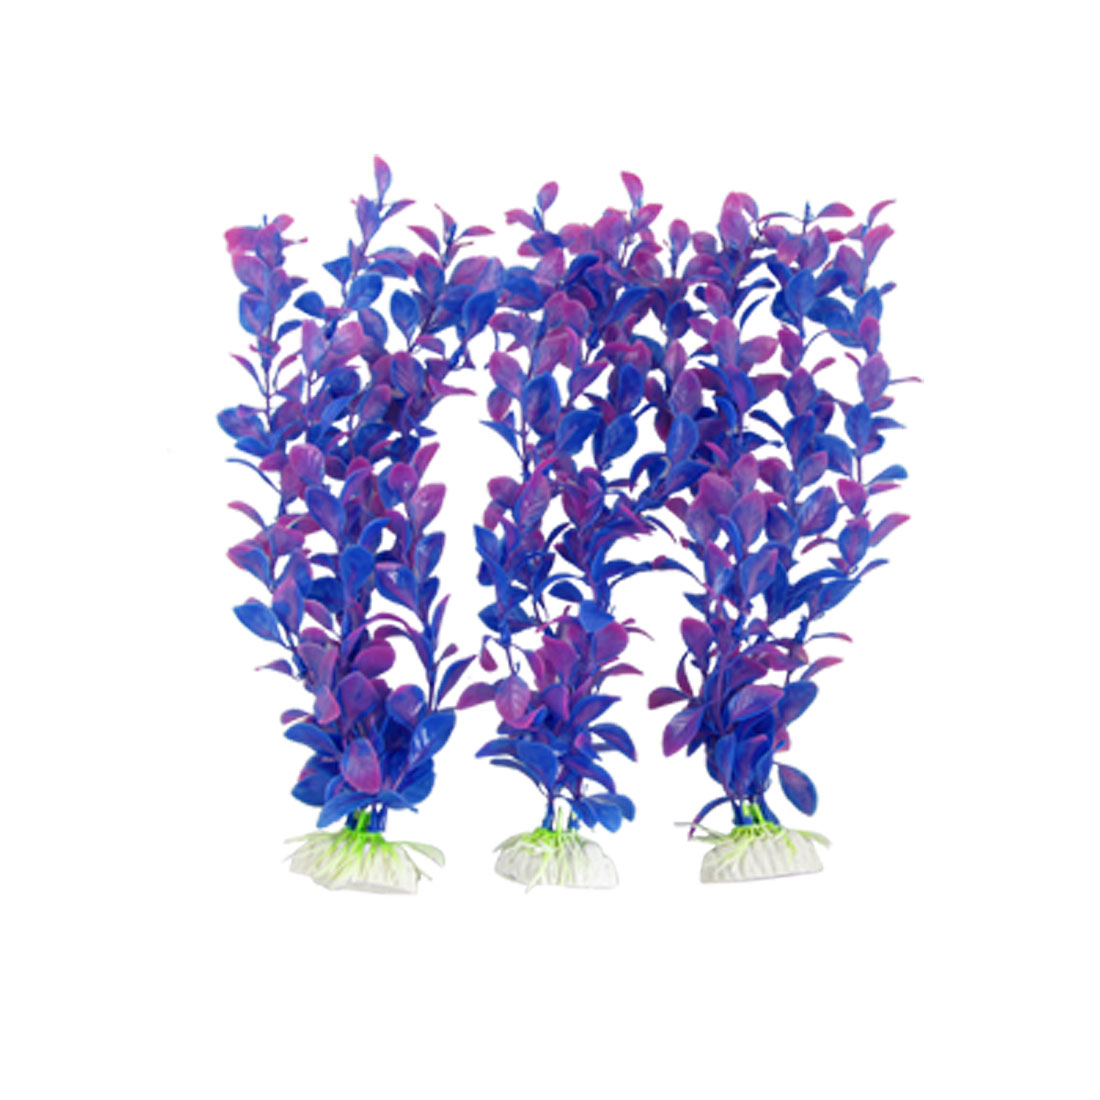 3Pcs Blue Pink Tie-Dye Plastic Bacopa Lanigera Aquarium Ornament